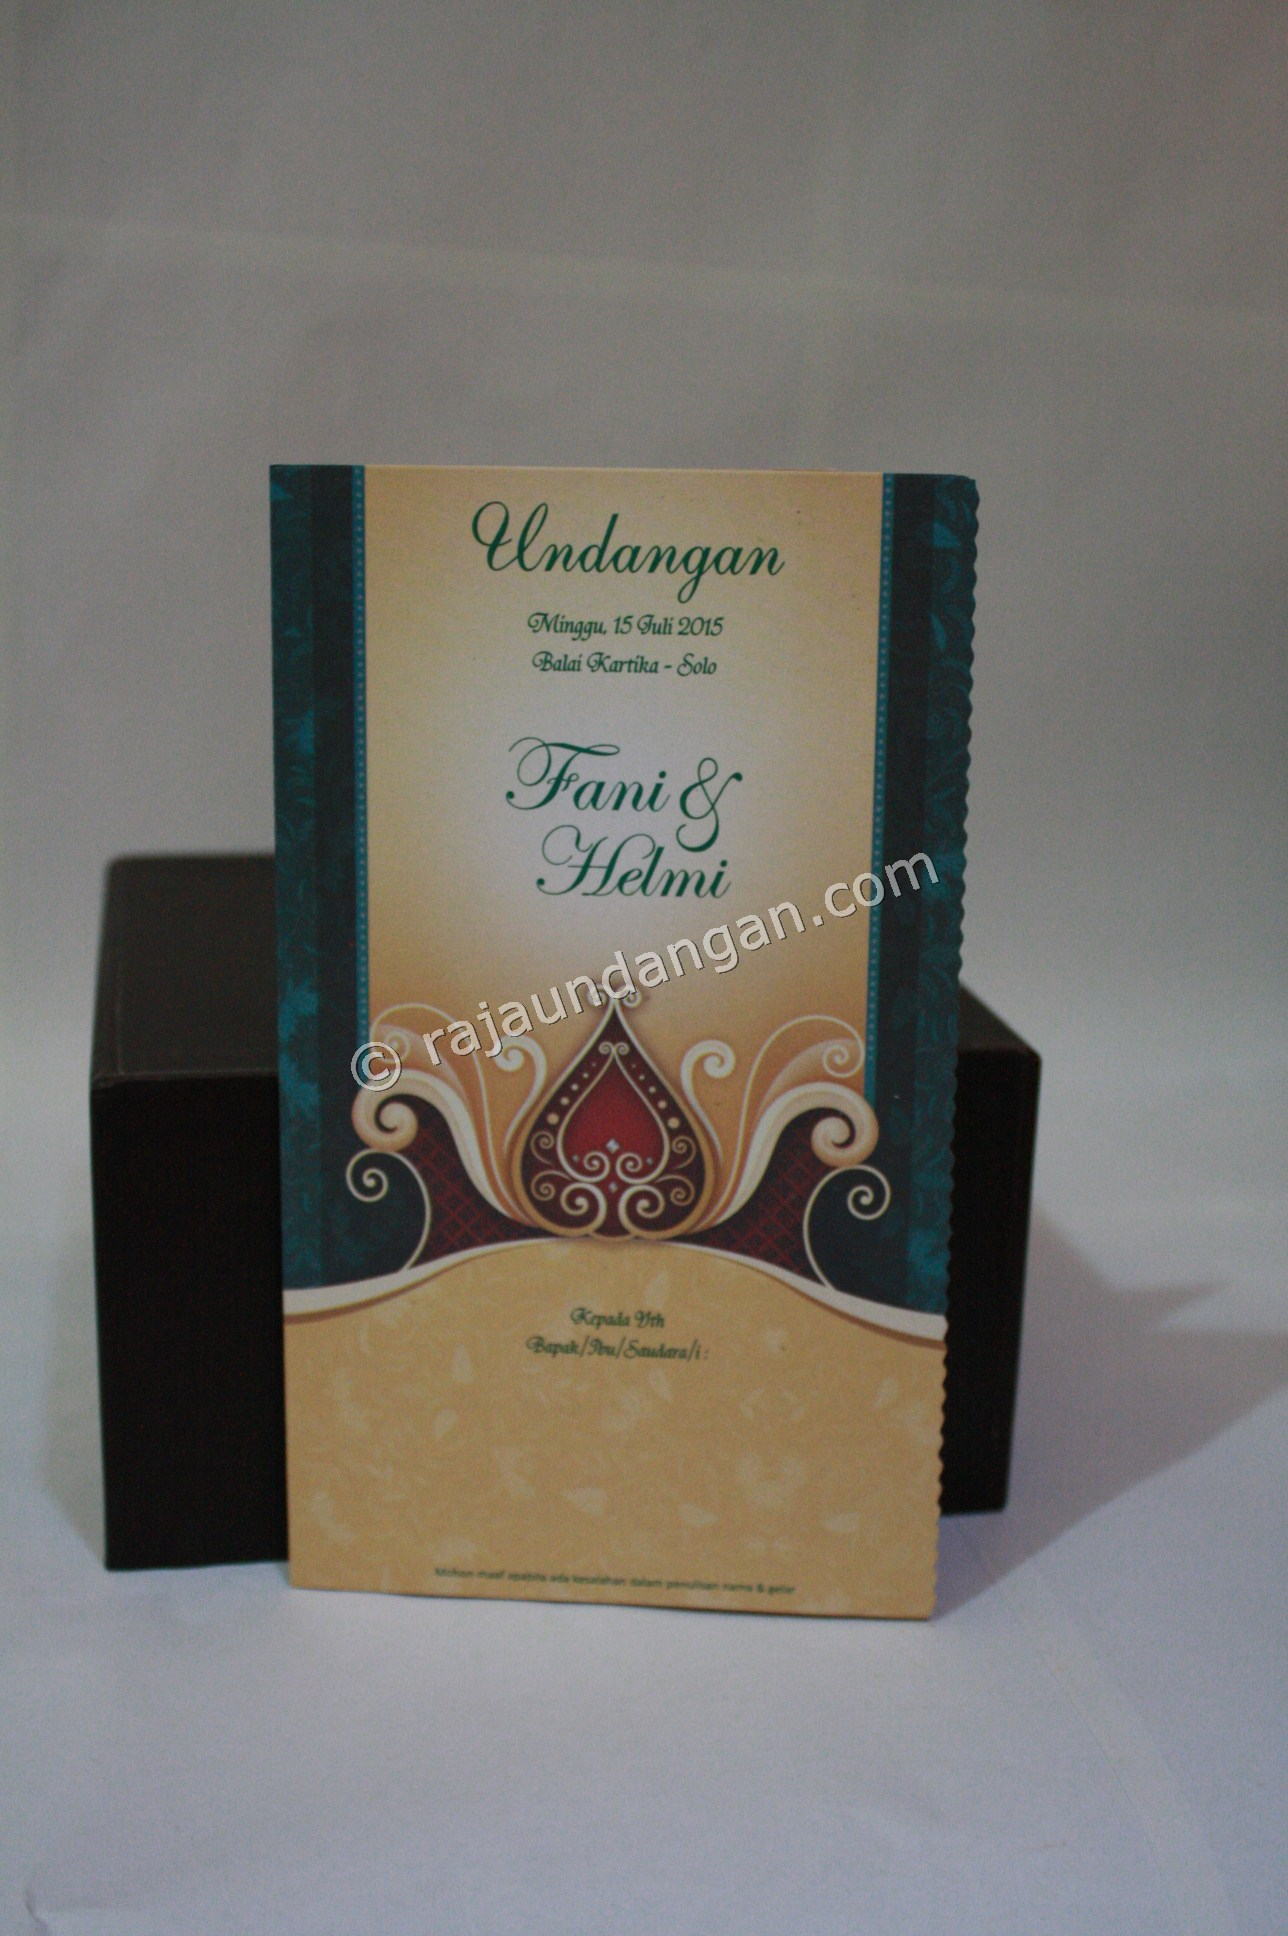 Undangan Pernikahan Softcover Fani dan Helmi - Desain Wedding Invitations Unik dan Simple